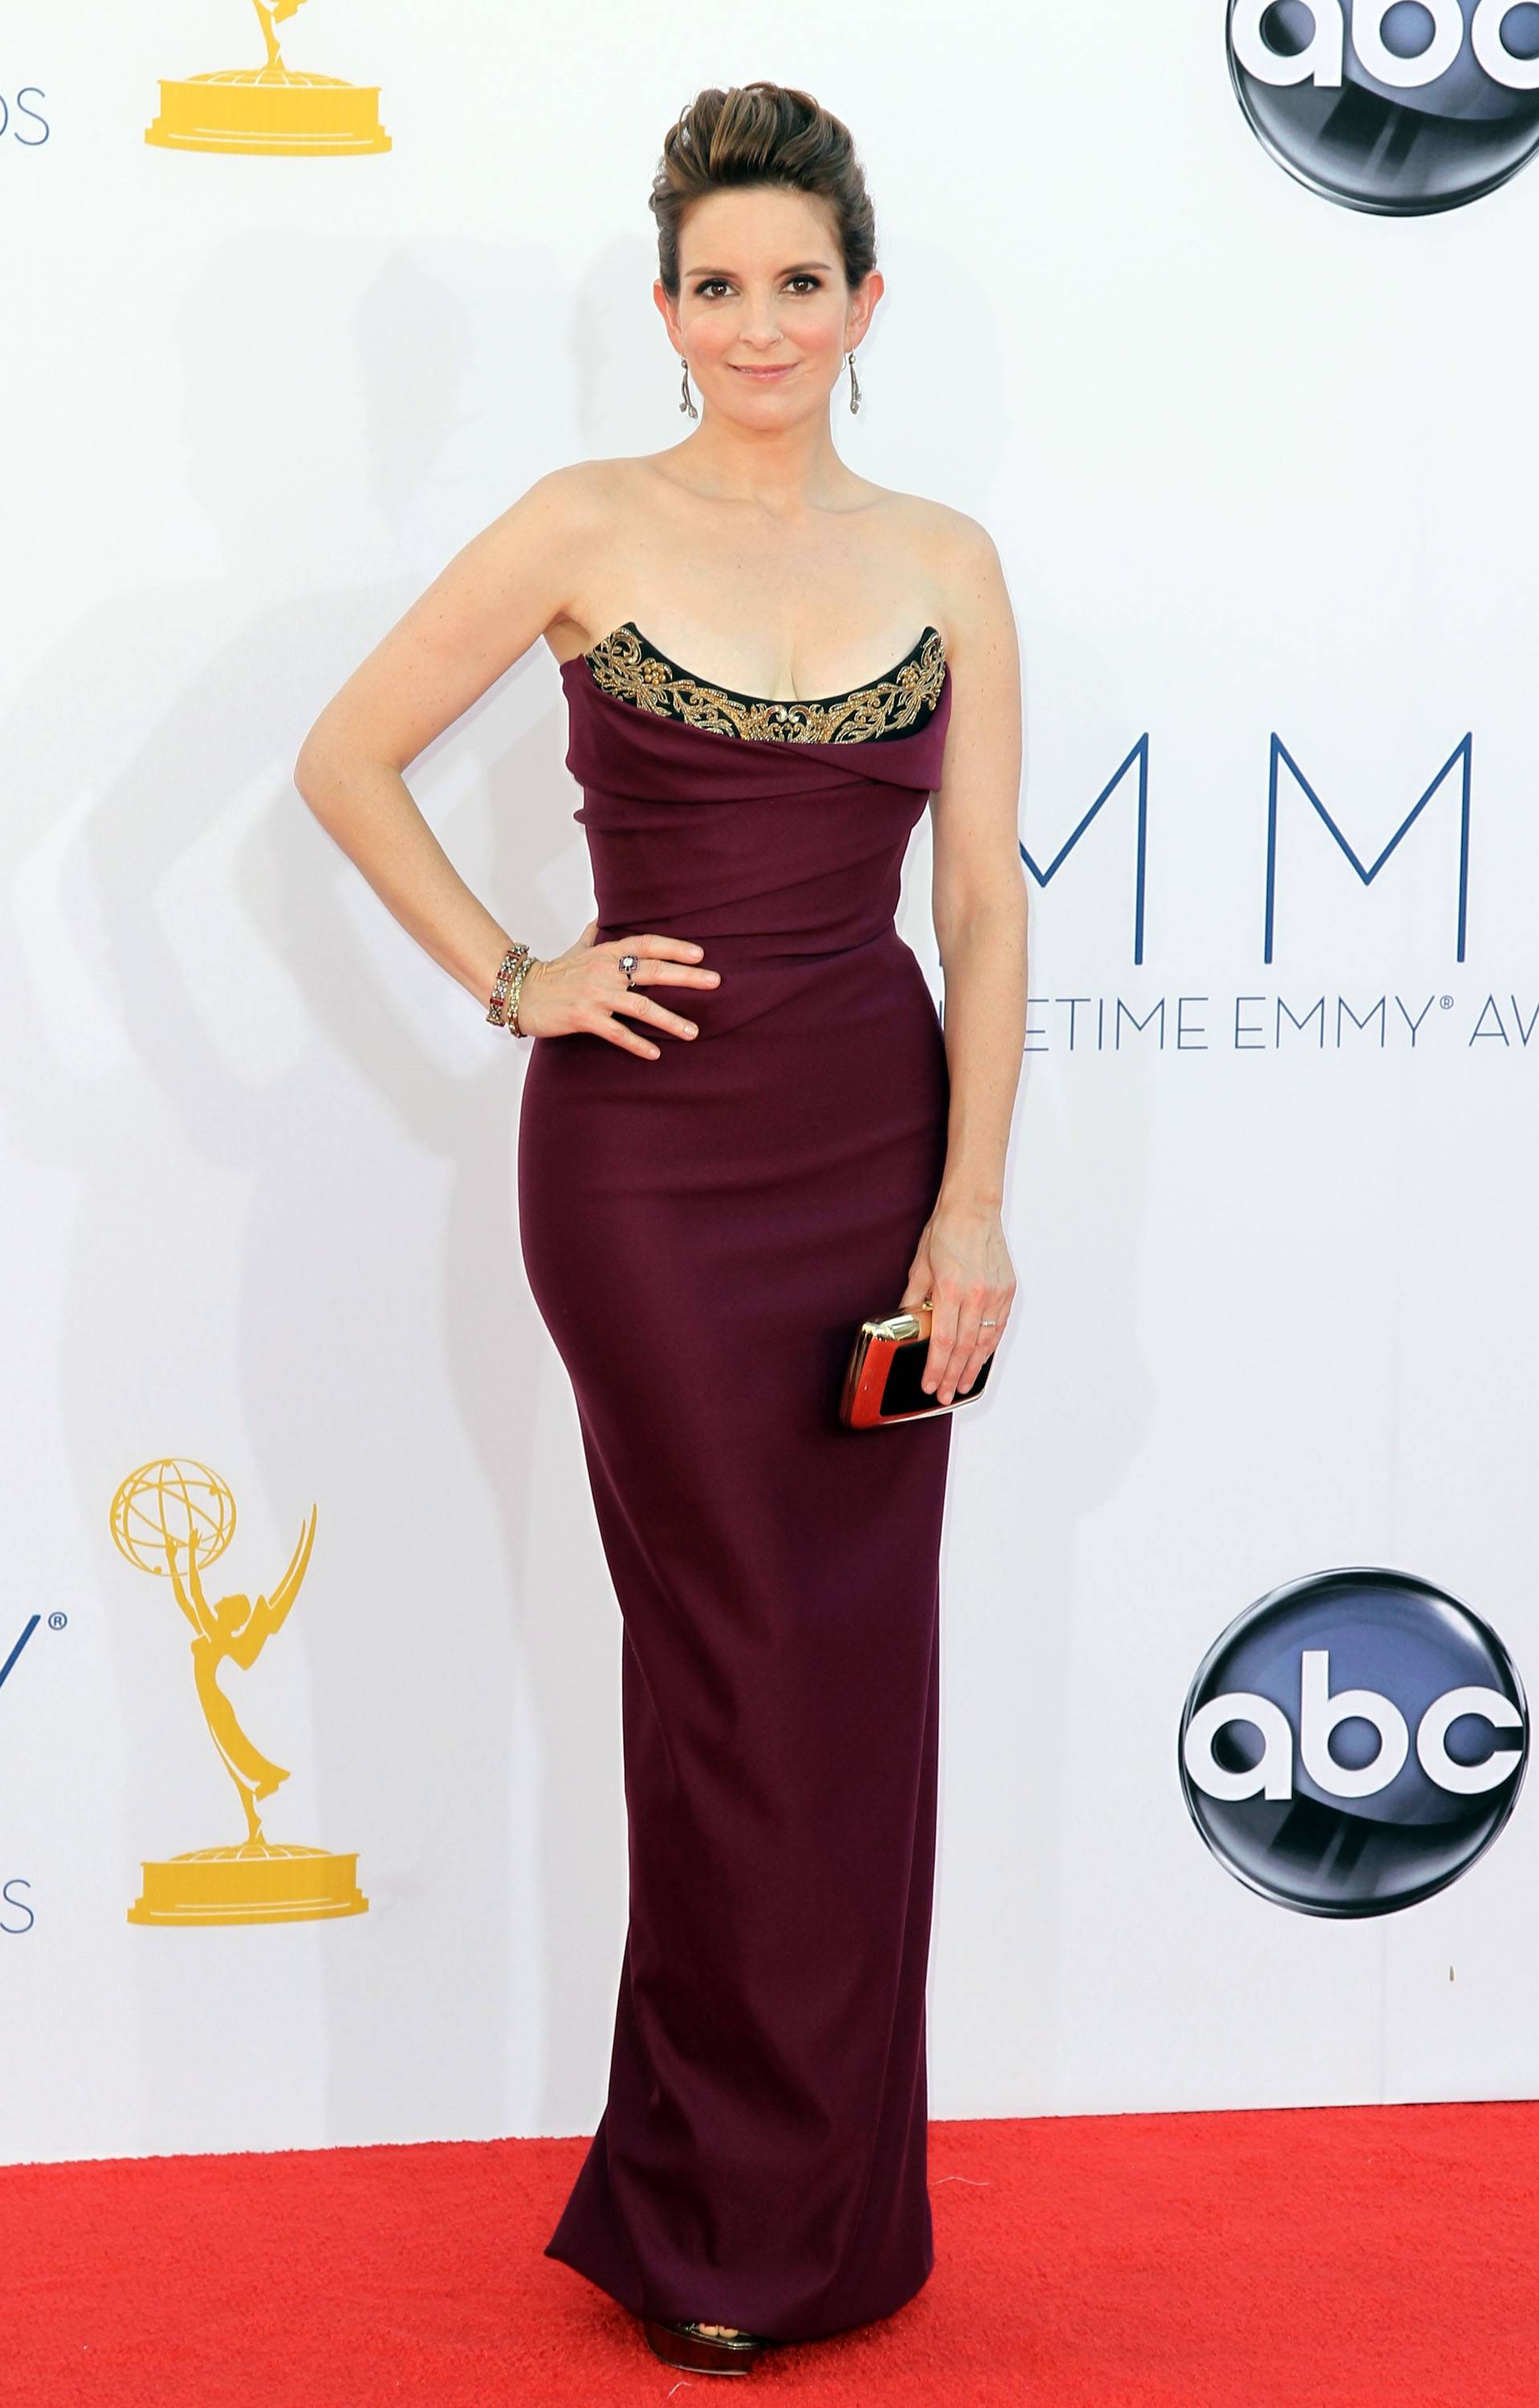 """30 Rock"" star Tina Fey looks less Liz Lemon and more movie siren in this elegant gown"